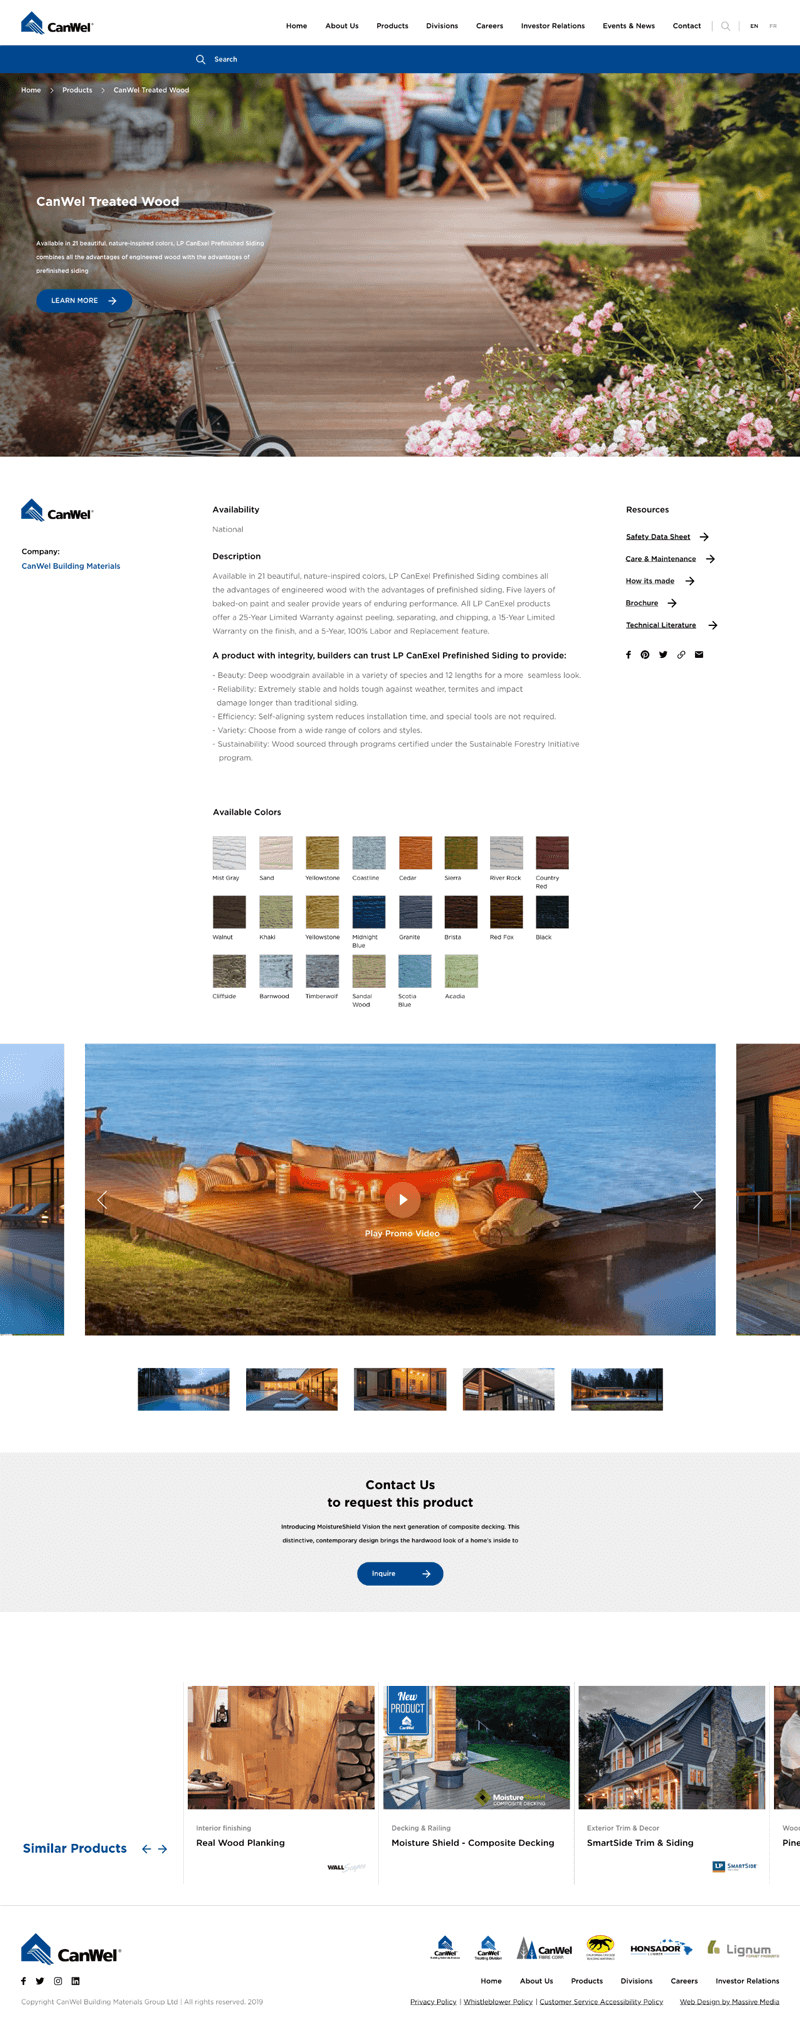 Product page example for Canwel Building Materials